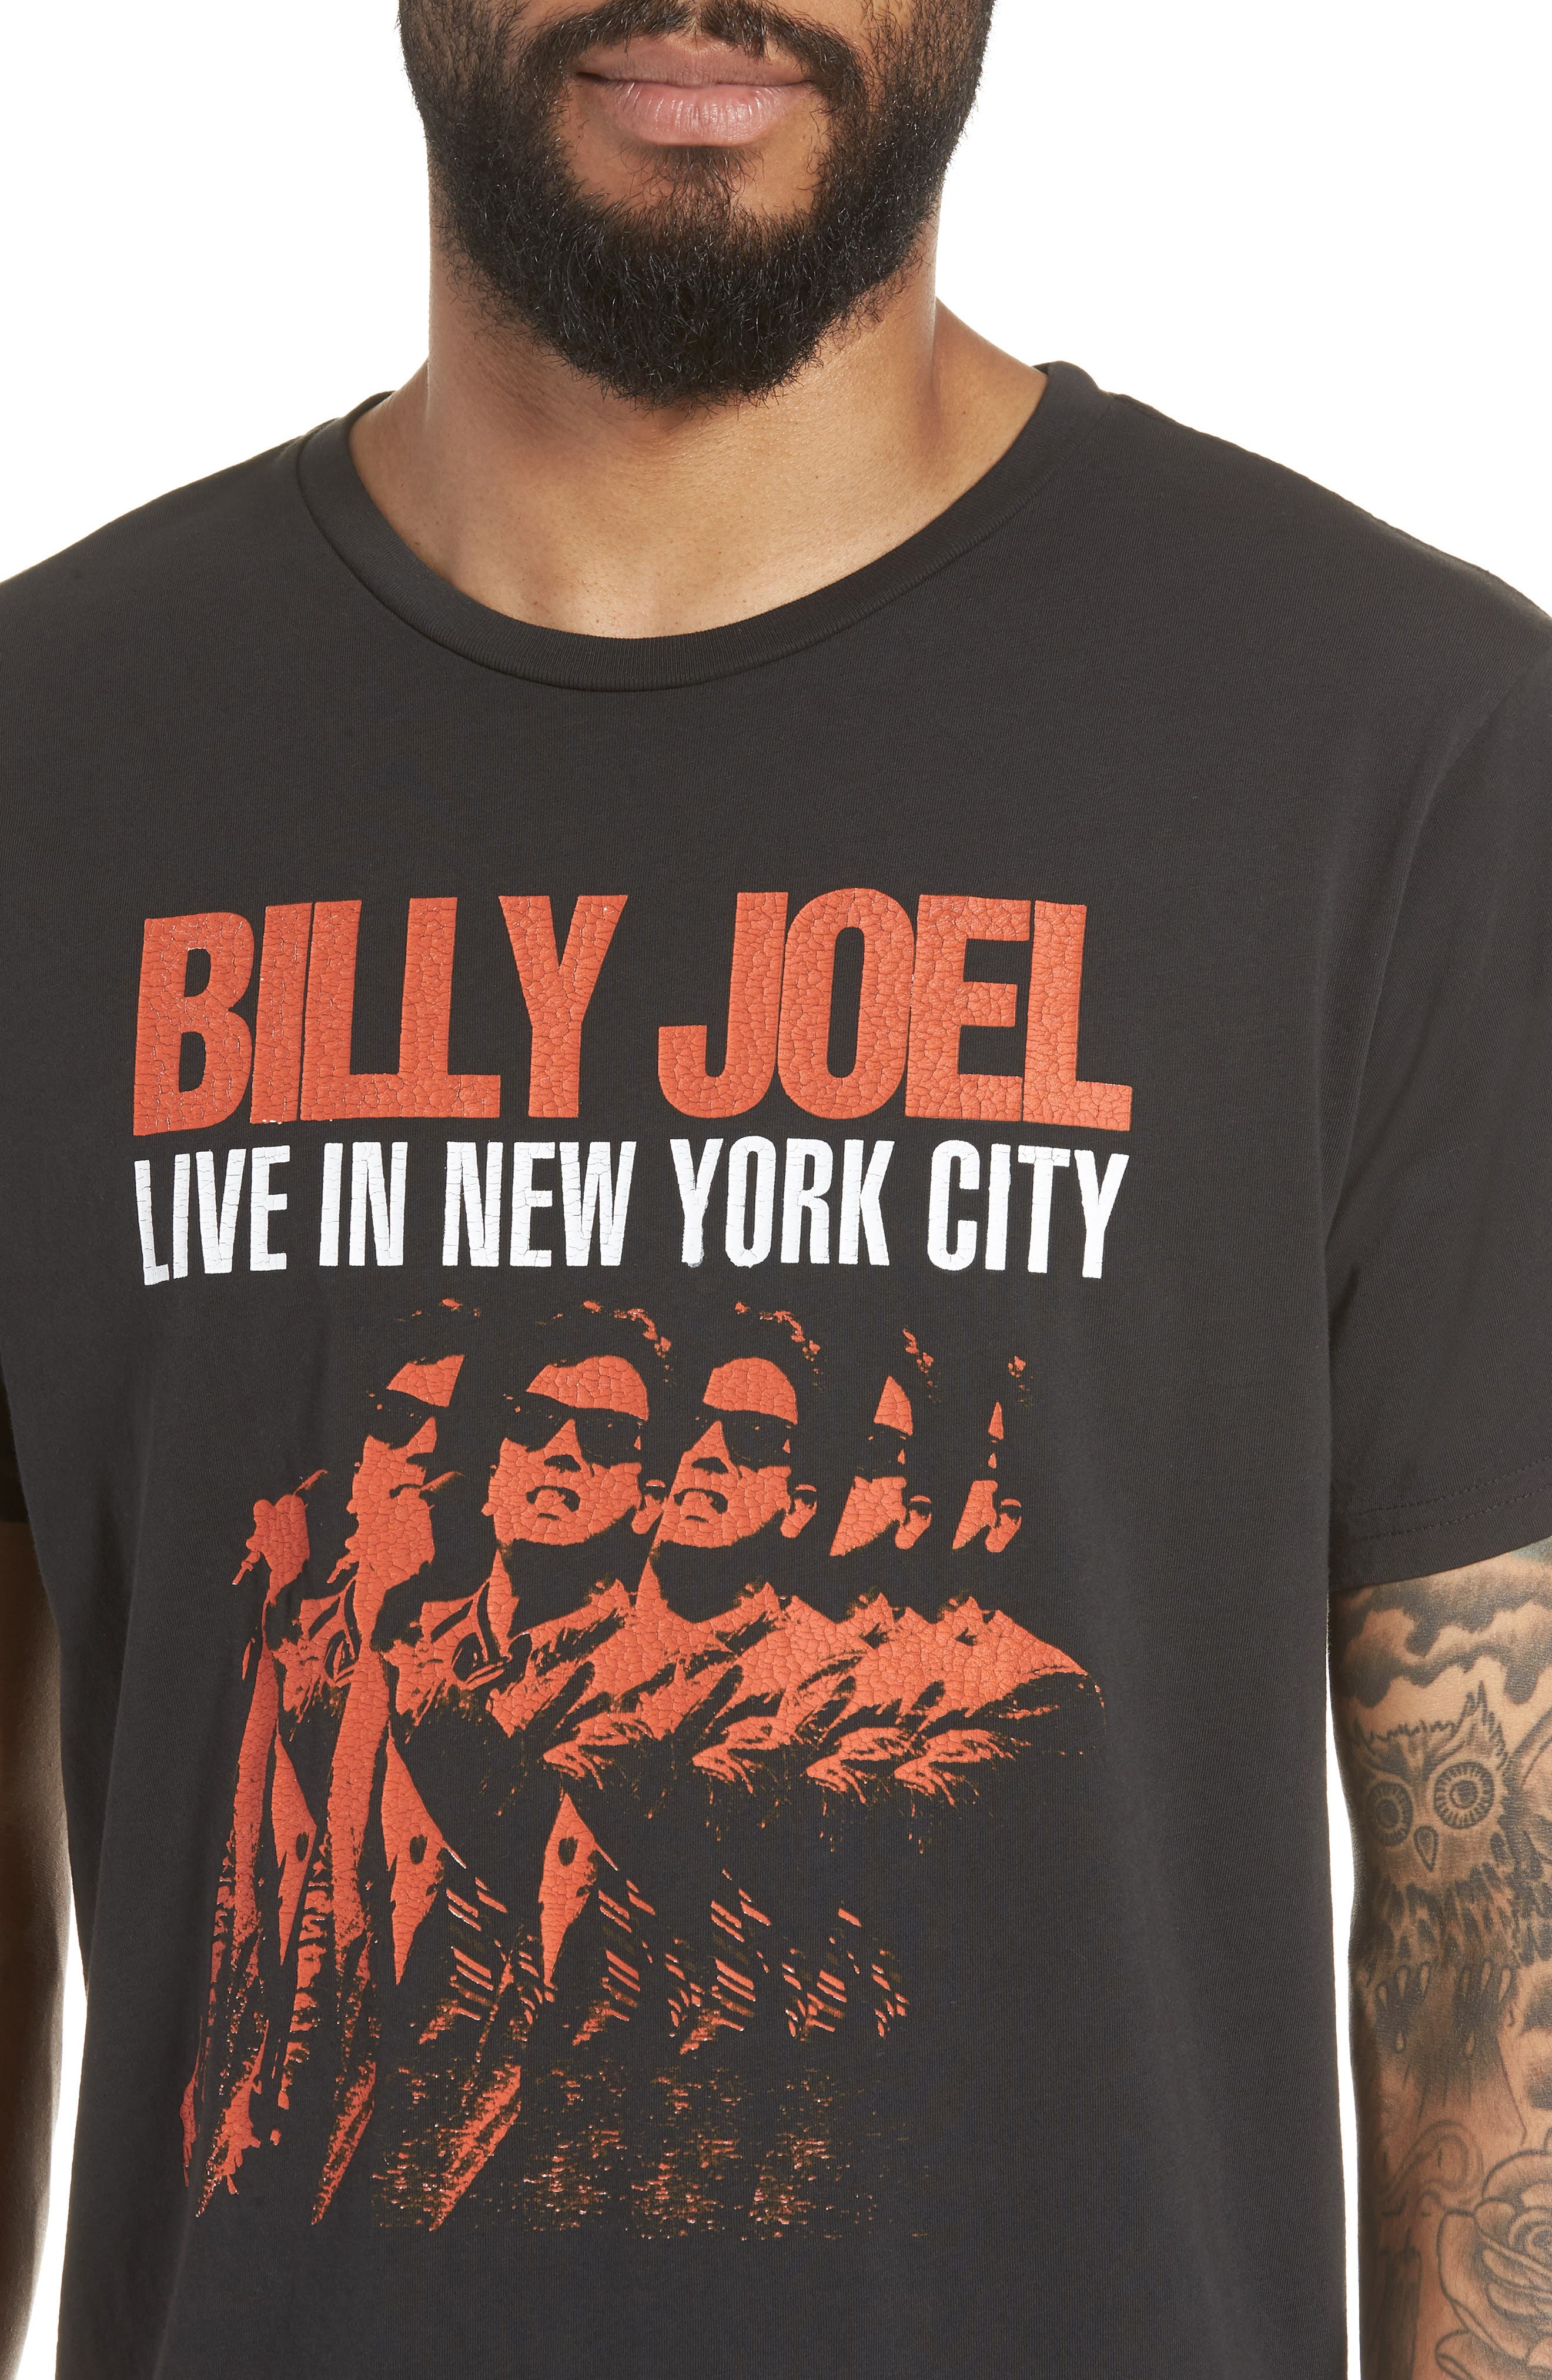 Billy Joel Live in NYC Crewneck T-Shirt,                             Alternate thumbnail 4, color,                             001